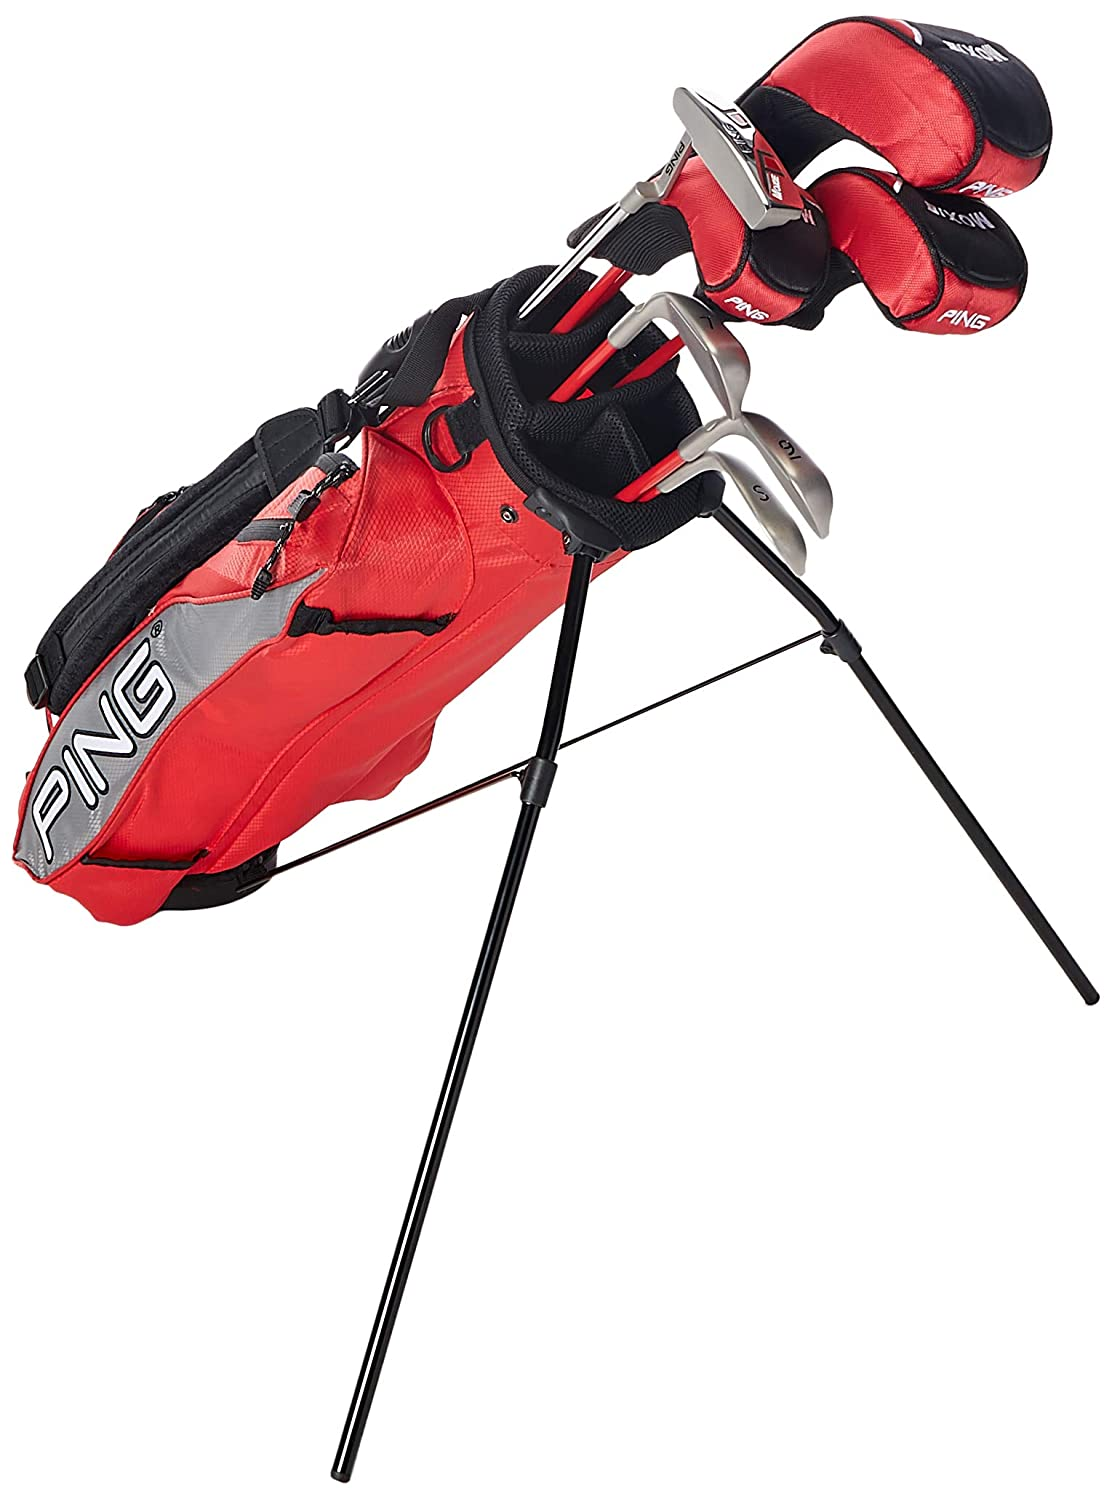 PING Moxie Junior - Juego Completo de Golf - 30739-1: Amazon ...